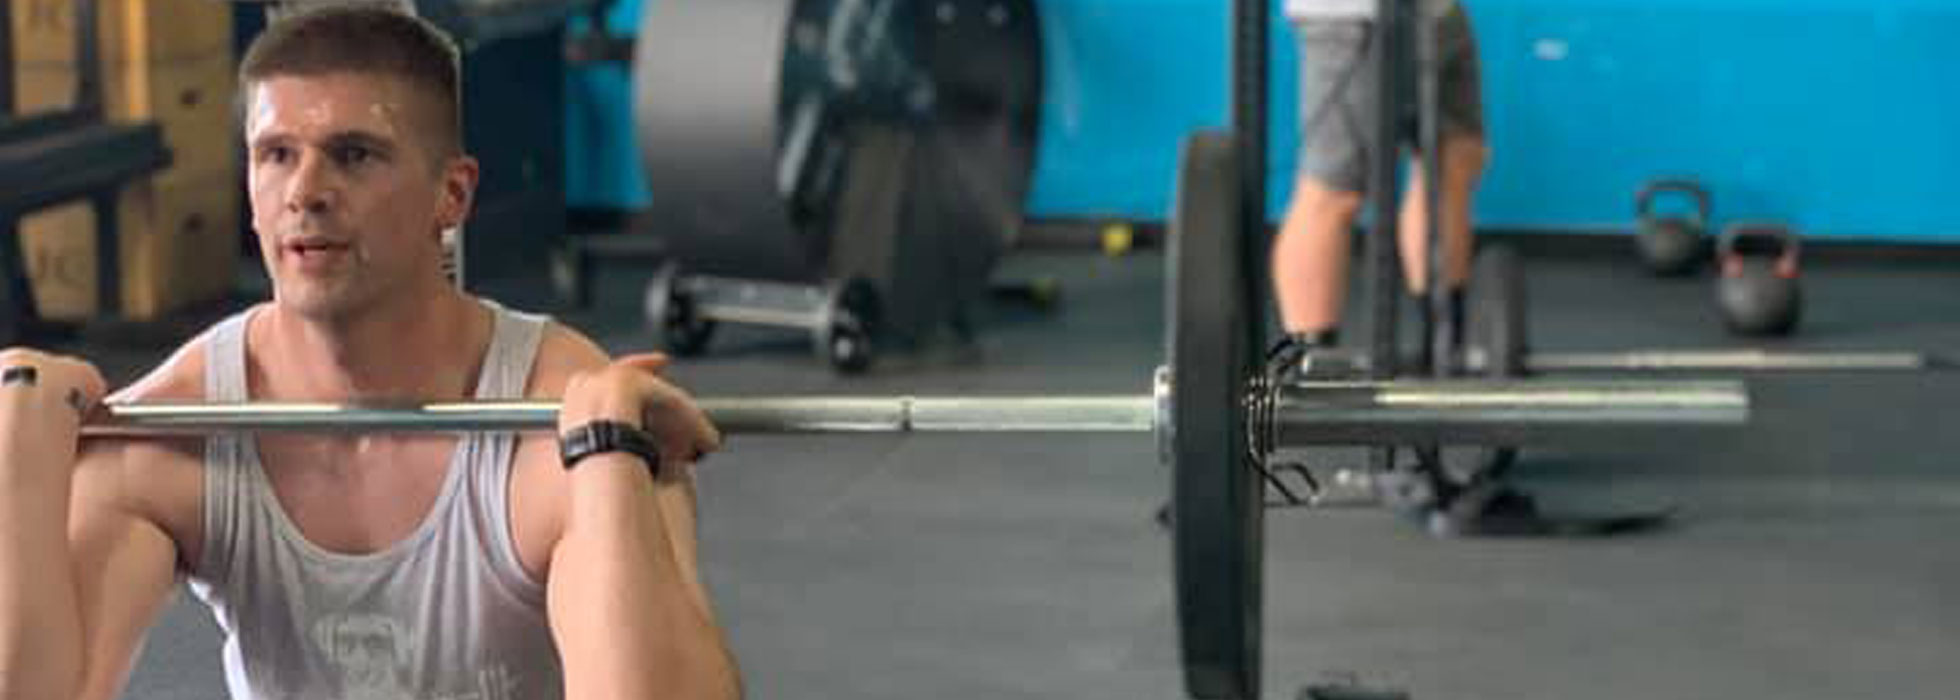 CrossFIt Group Fitness Near Me In Commerce City, CO